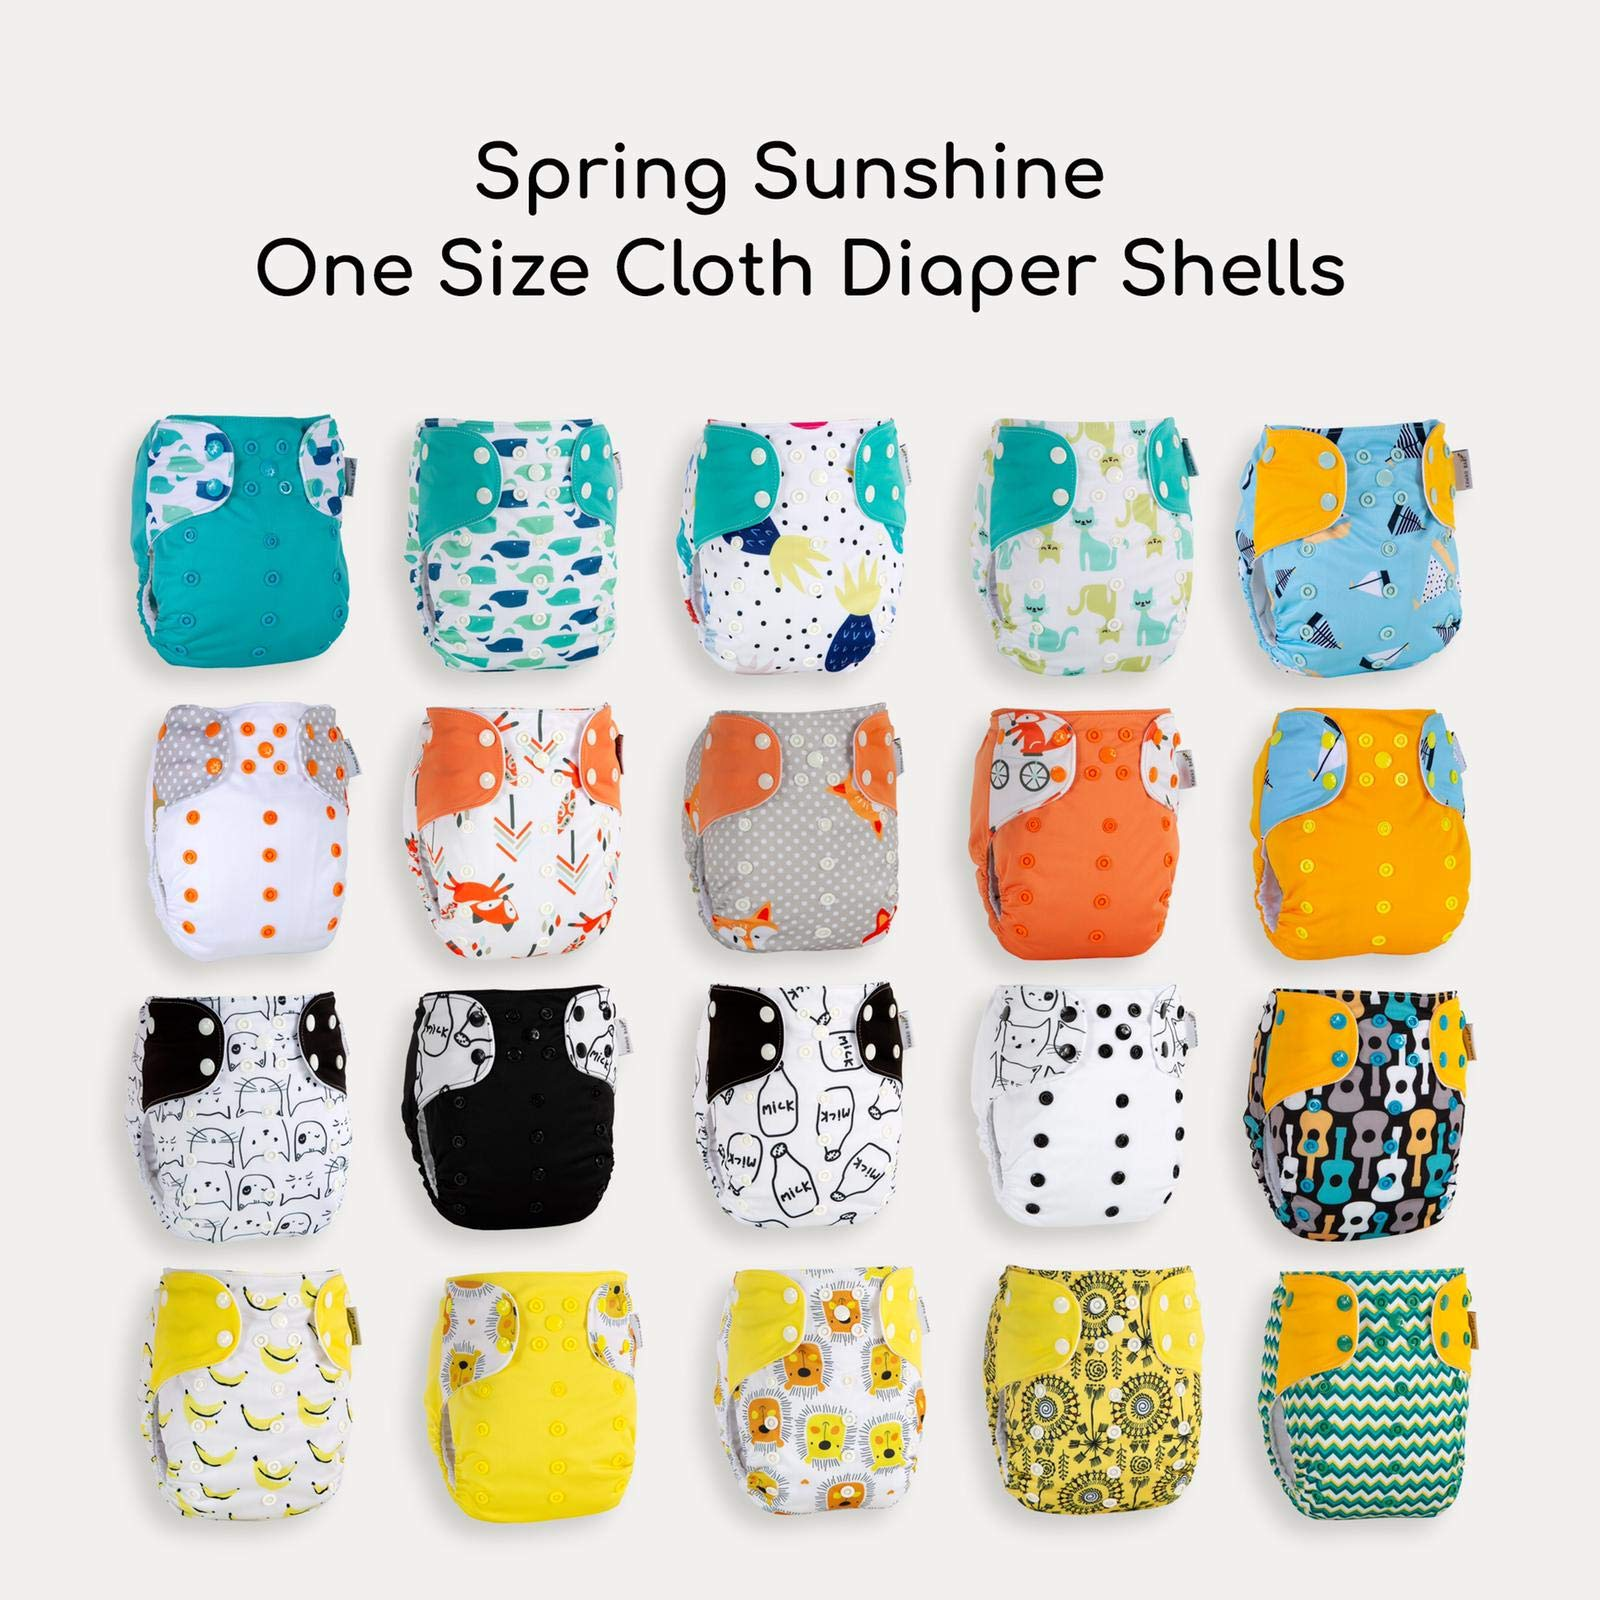 Best Seller! KaWaii Baby 20 One Size Printed Snap Cloth Diaper Shells/Spring Sunshine Theme/Reusable/Newborn to Toddler